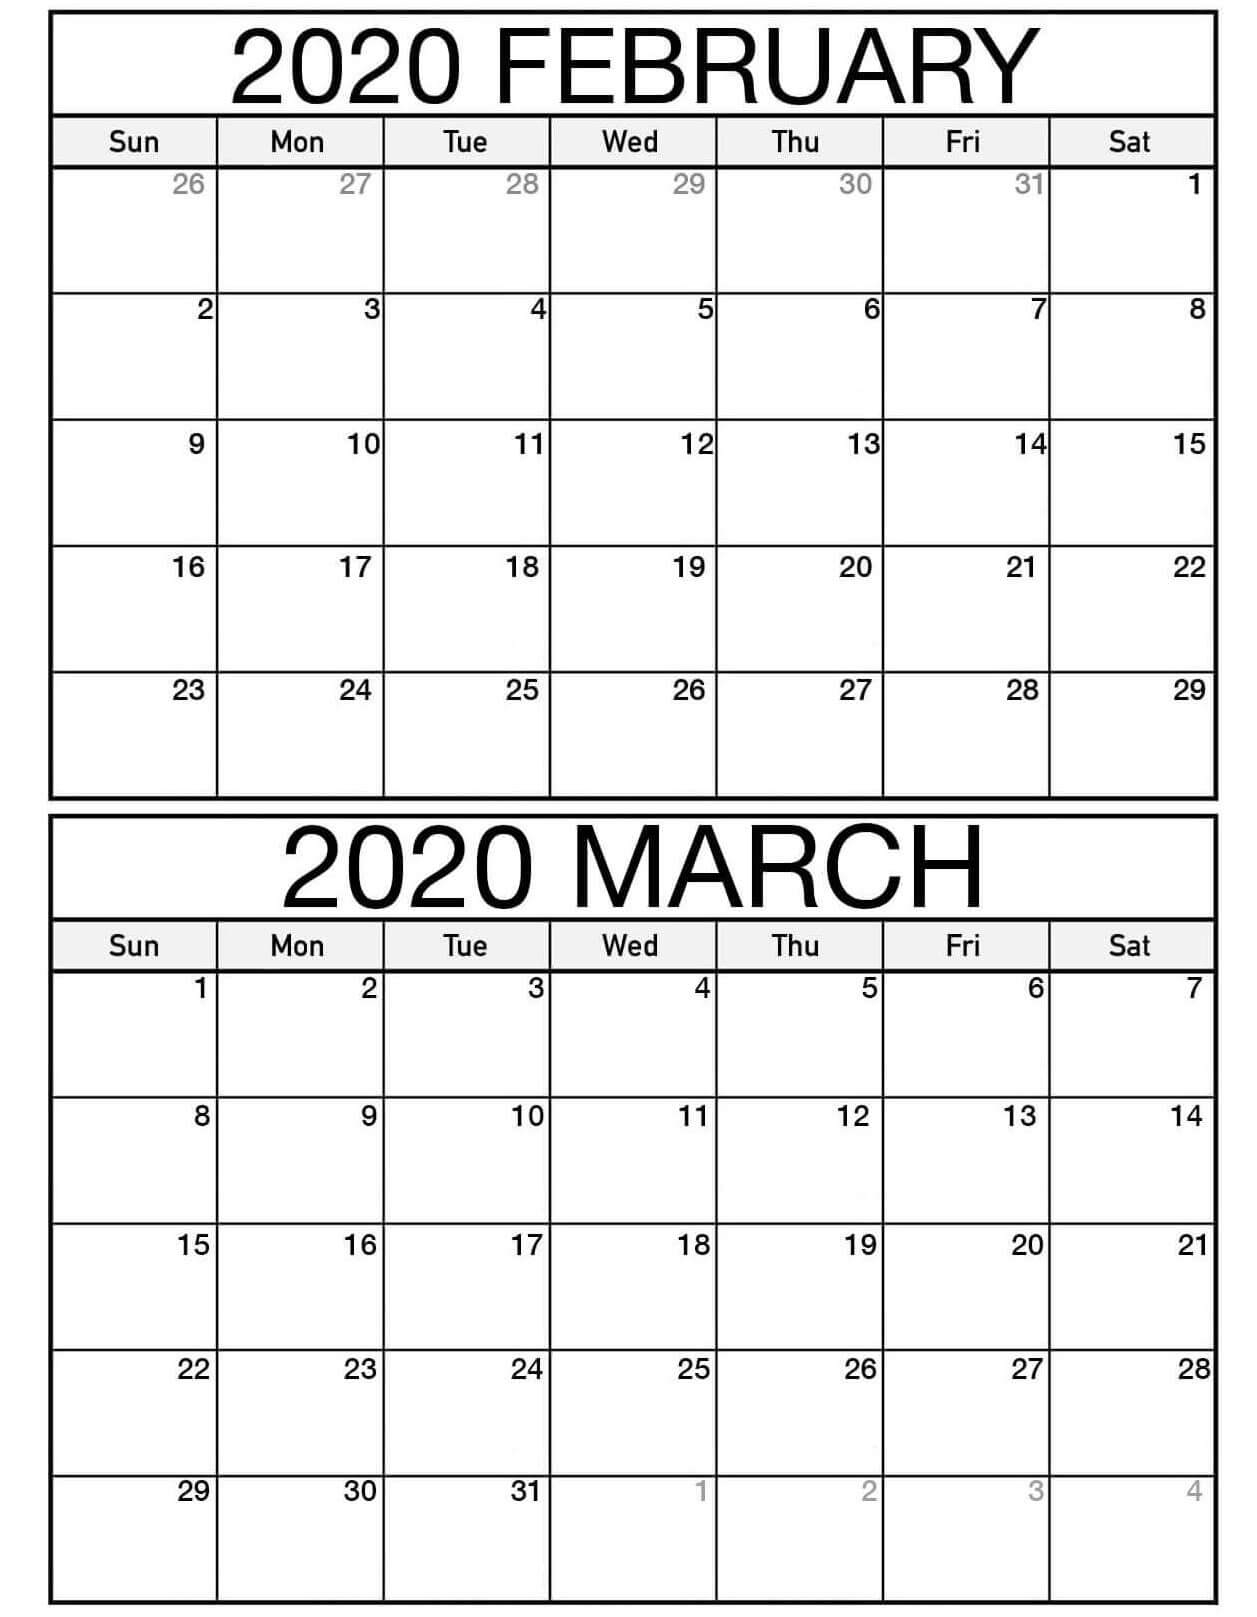 February March 2020 Calendar Pdf Colorful Template  Set regarding Feb And March 2020